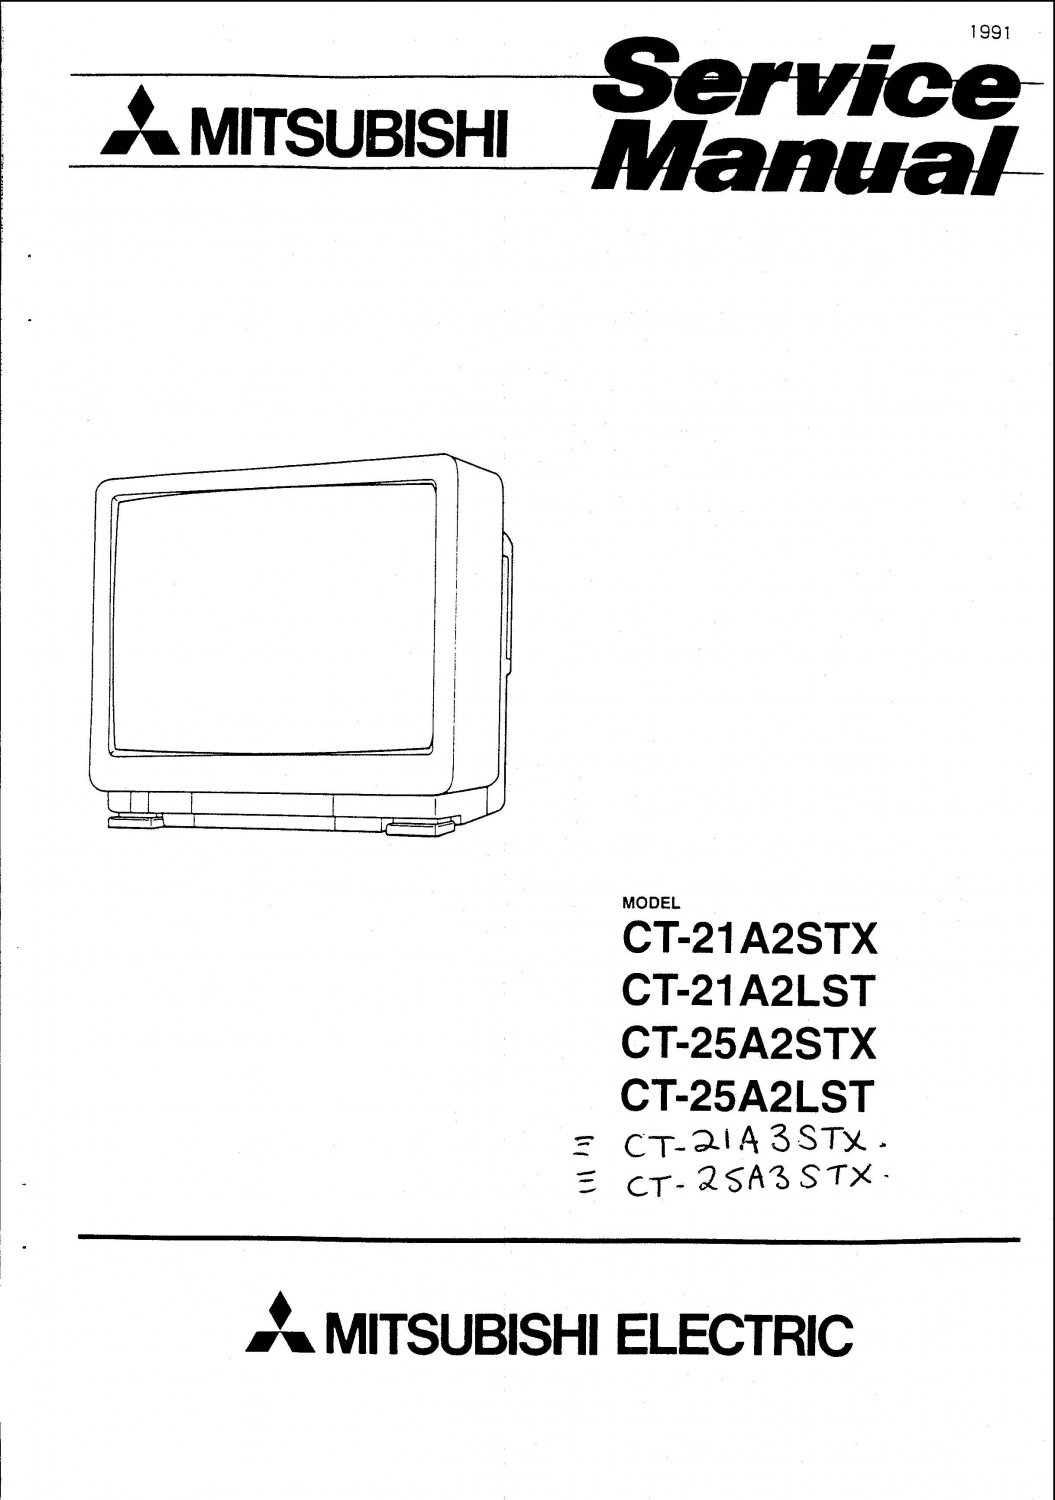 Mitsubishi CT25A2LST Television Service Manual PDF download.